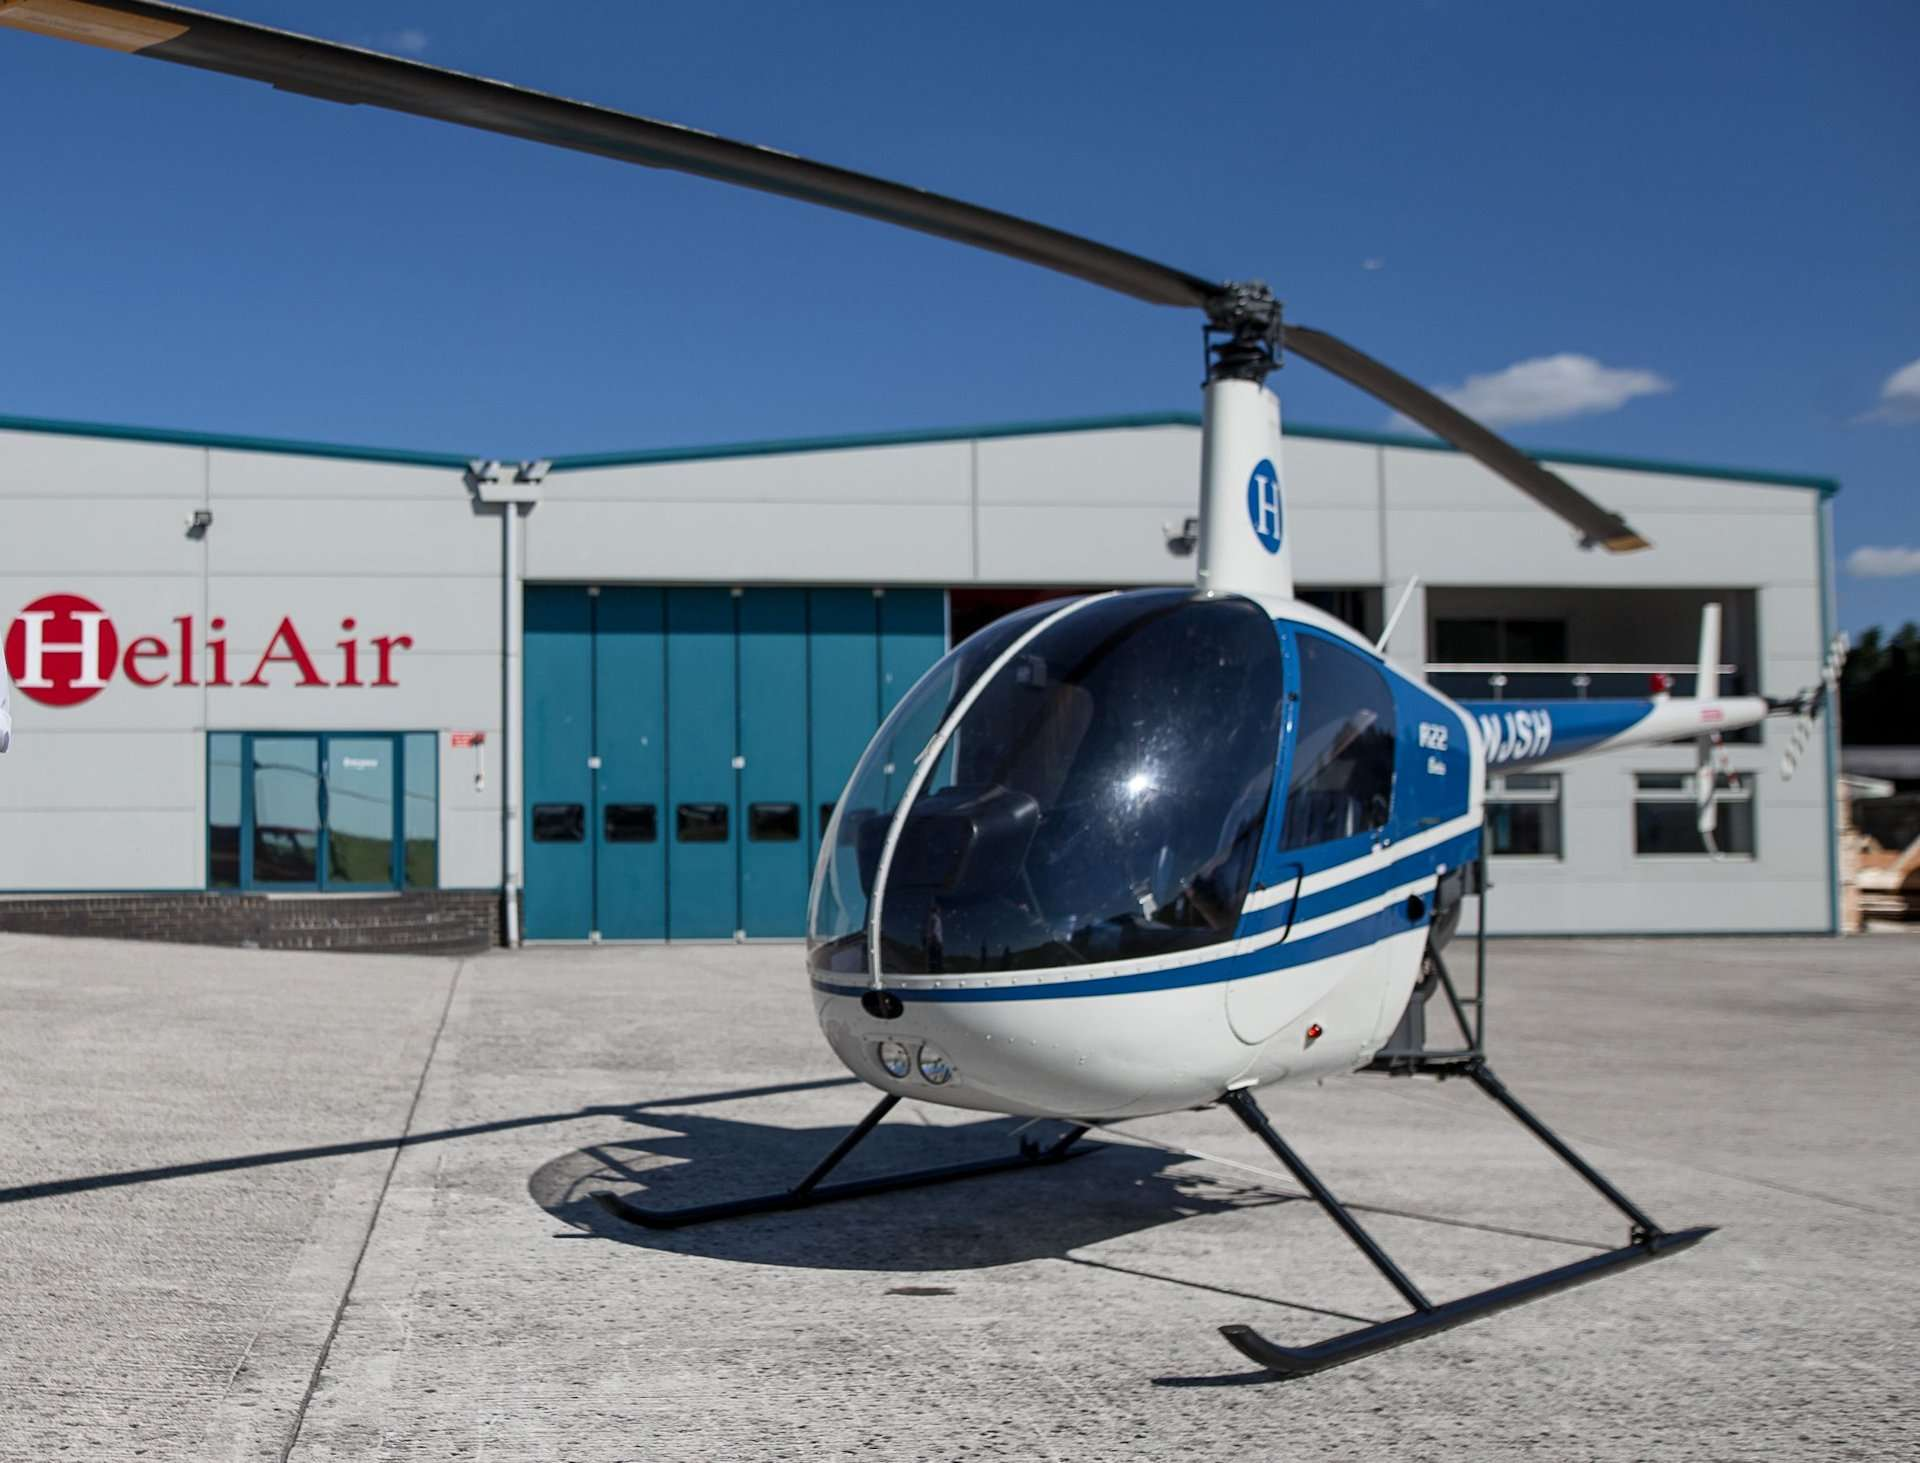 Robinson R22 Beta II Helicopter - R22 Helicopter Sales, Training, Overhauls, Parts